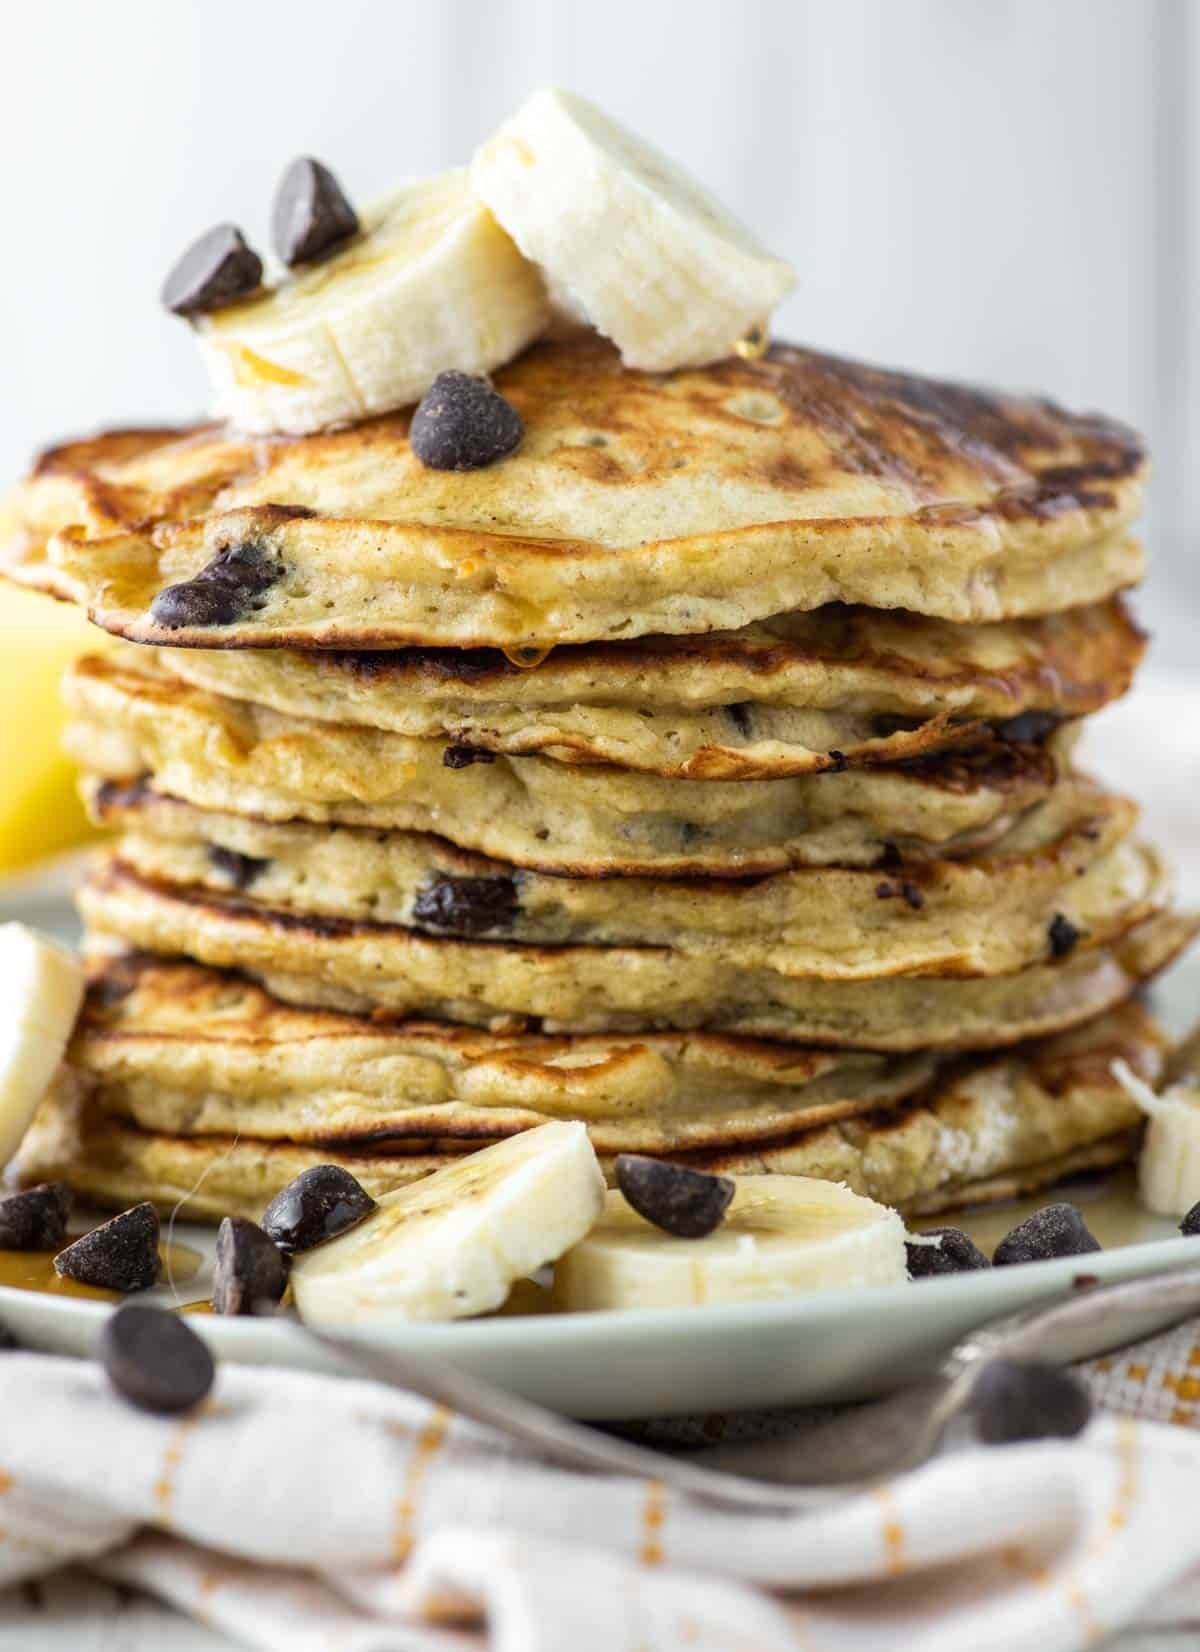 stacked pancakes with bananas and chocolate chips on plate